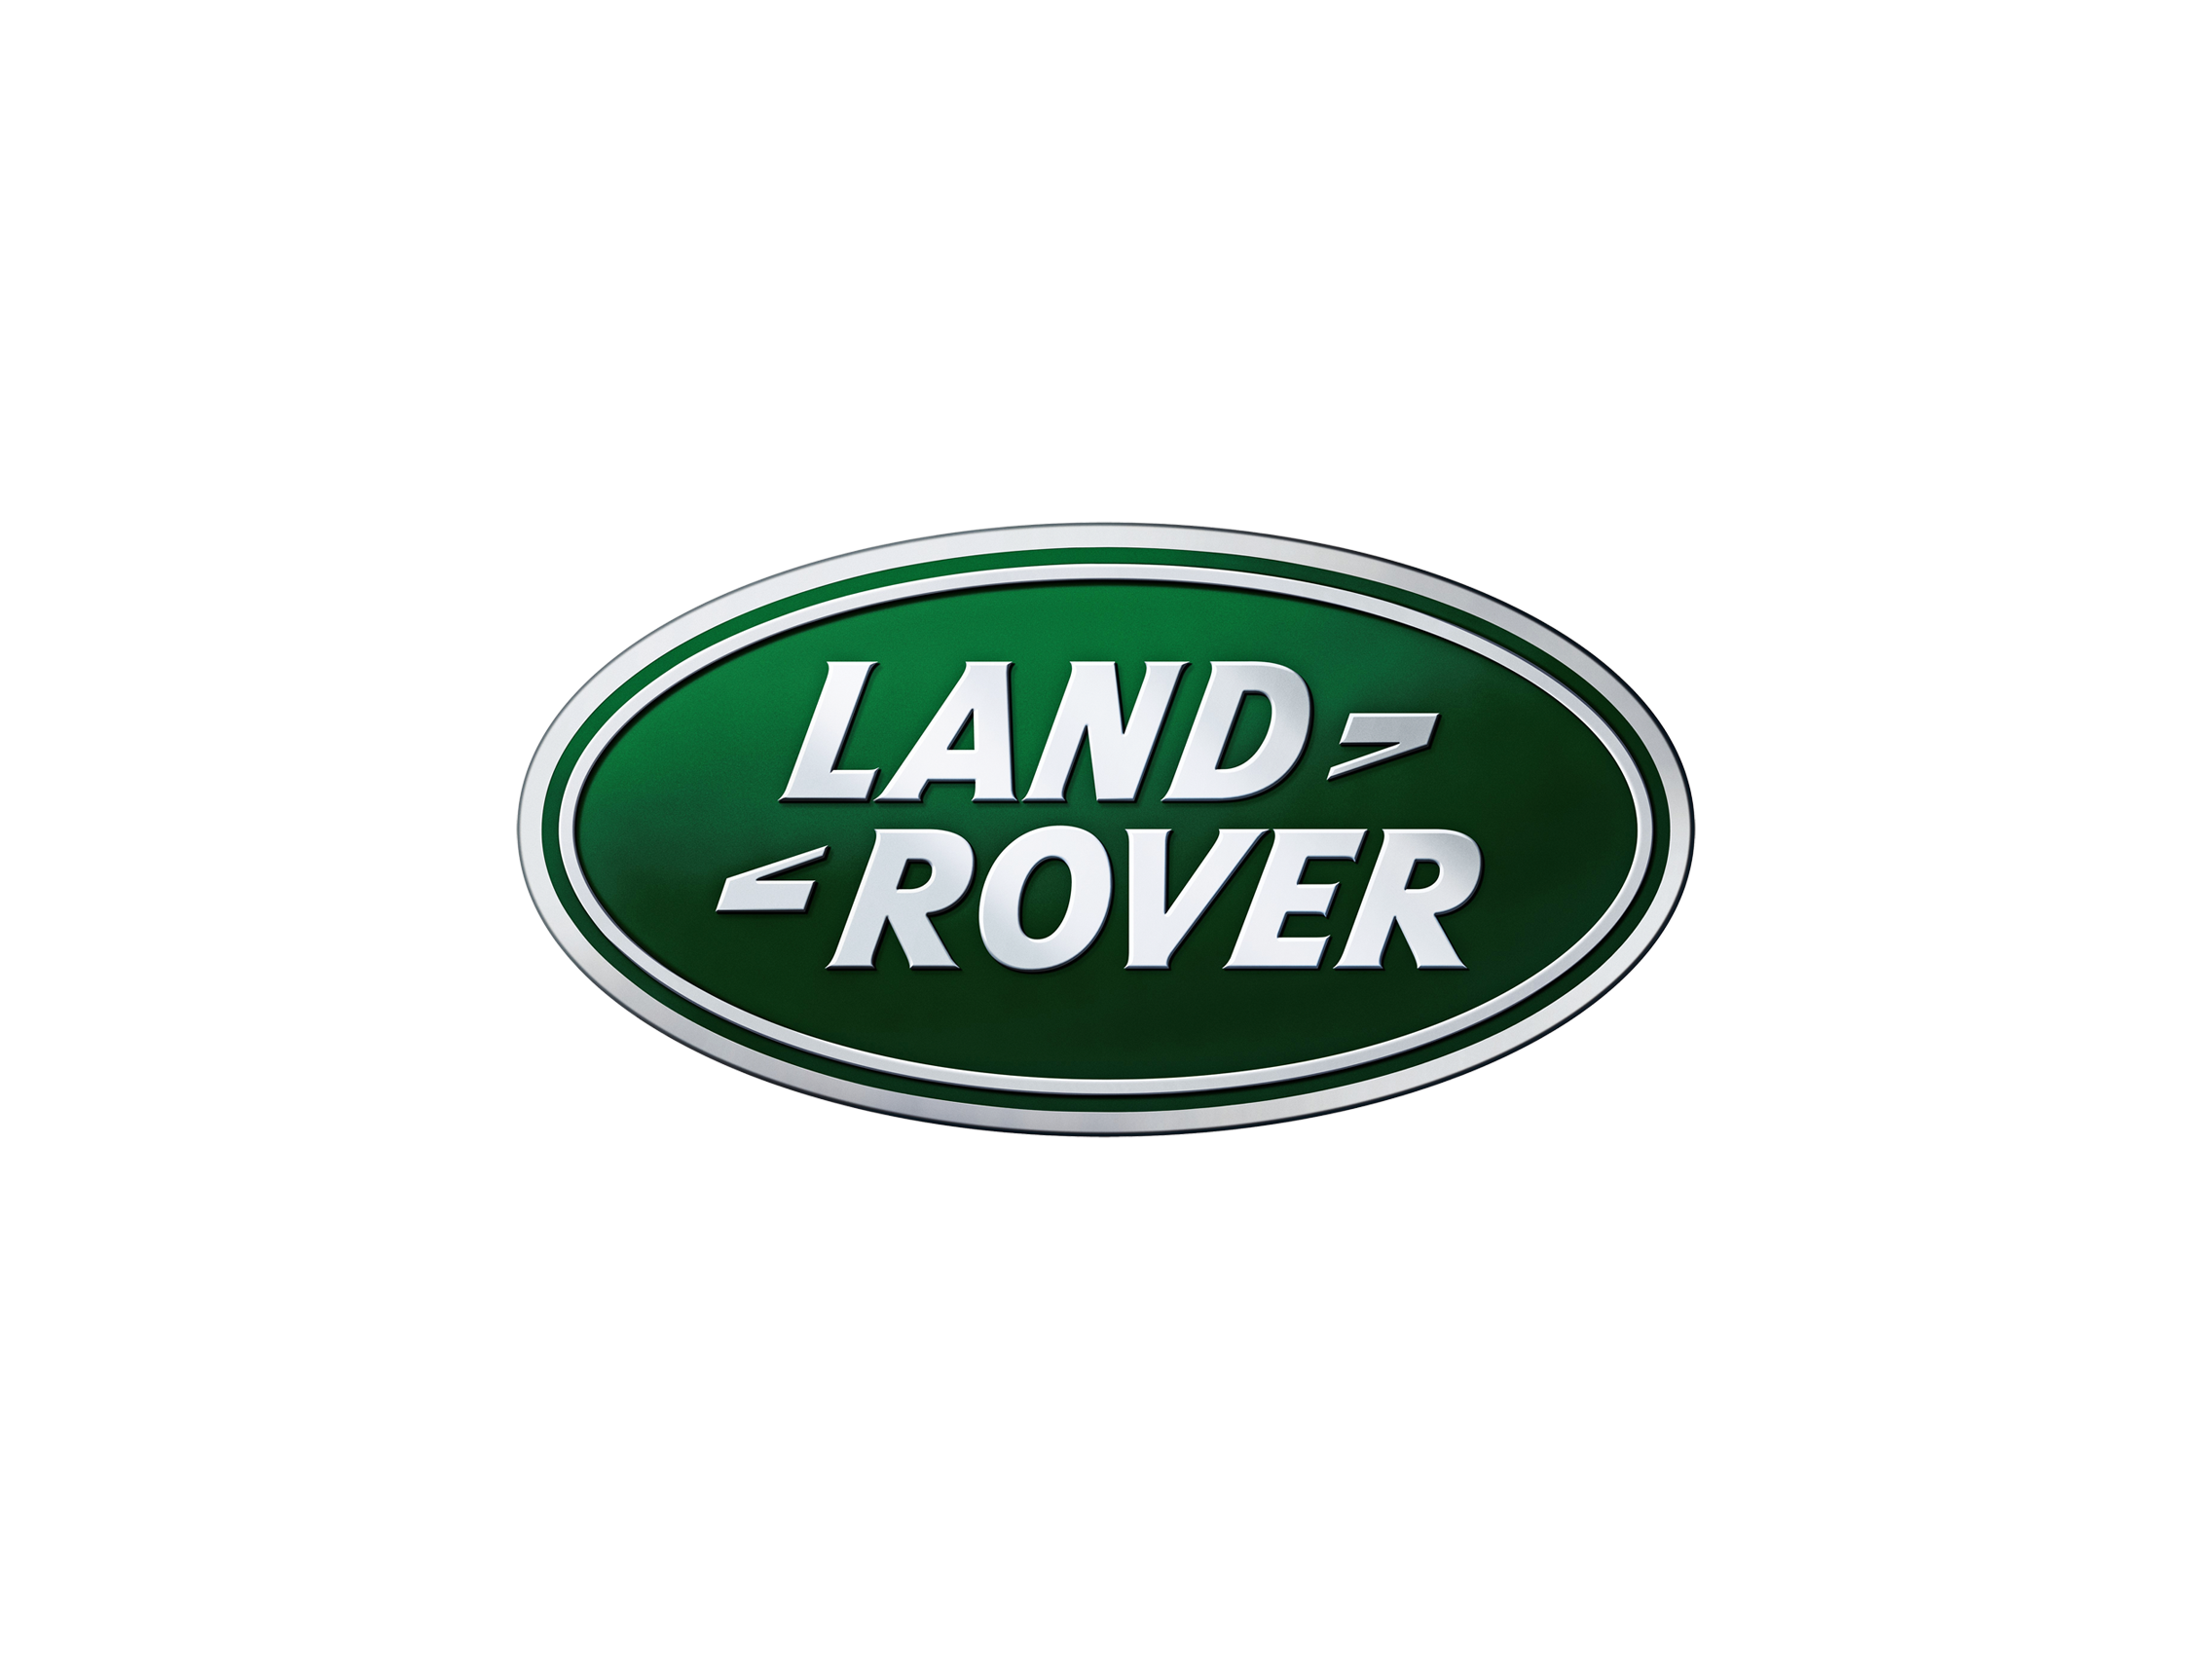 Used LANDROVER Defender-Discovery Engines For Sale